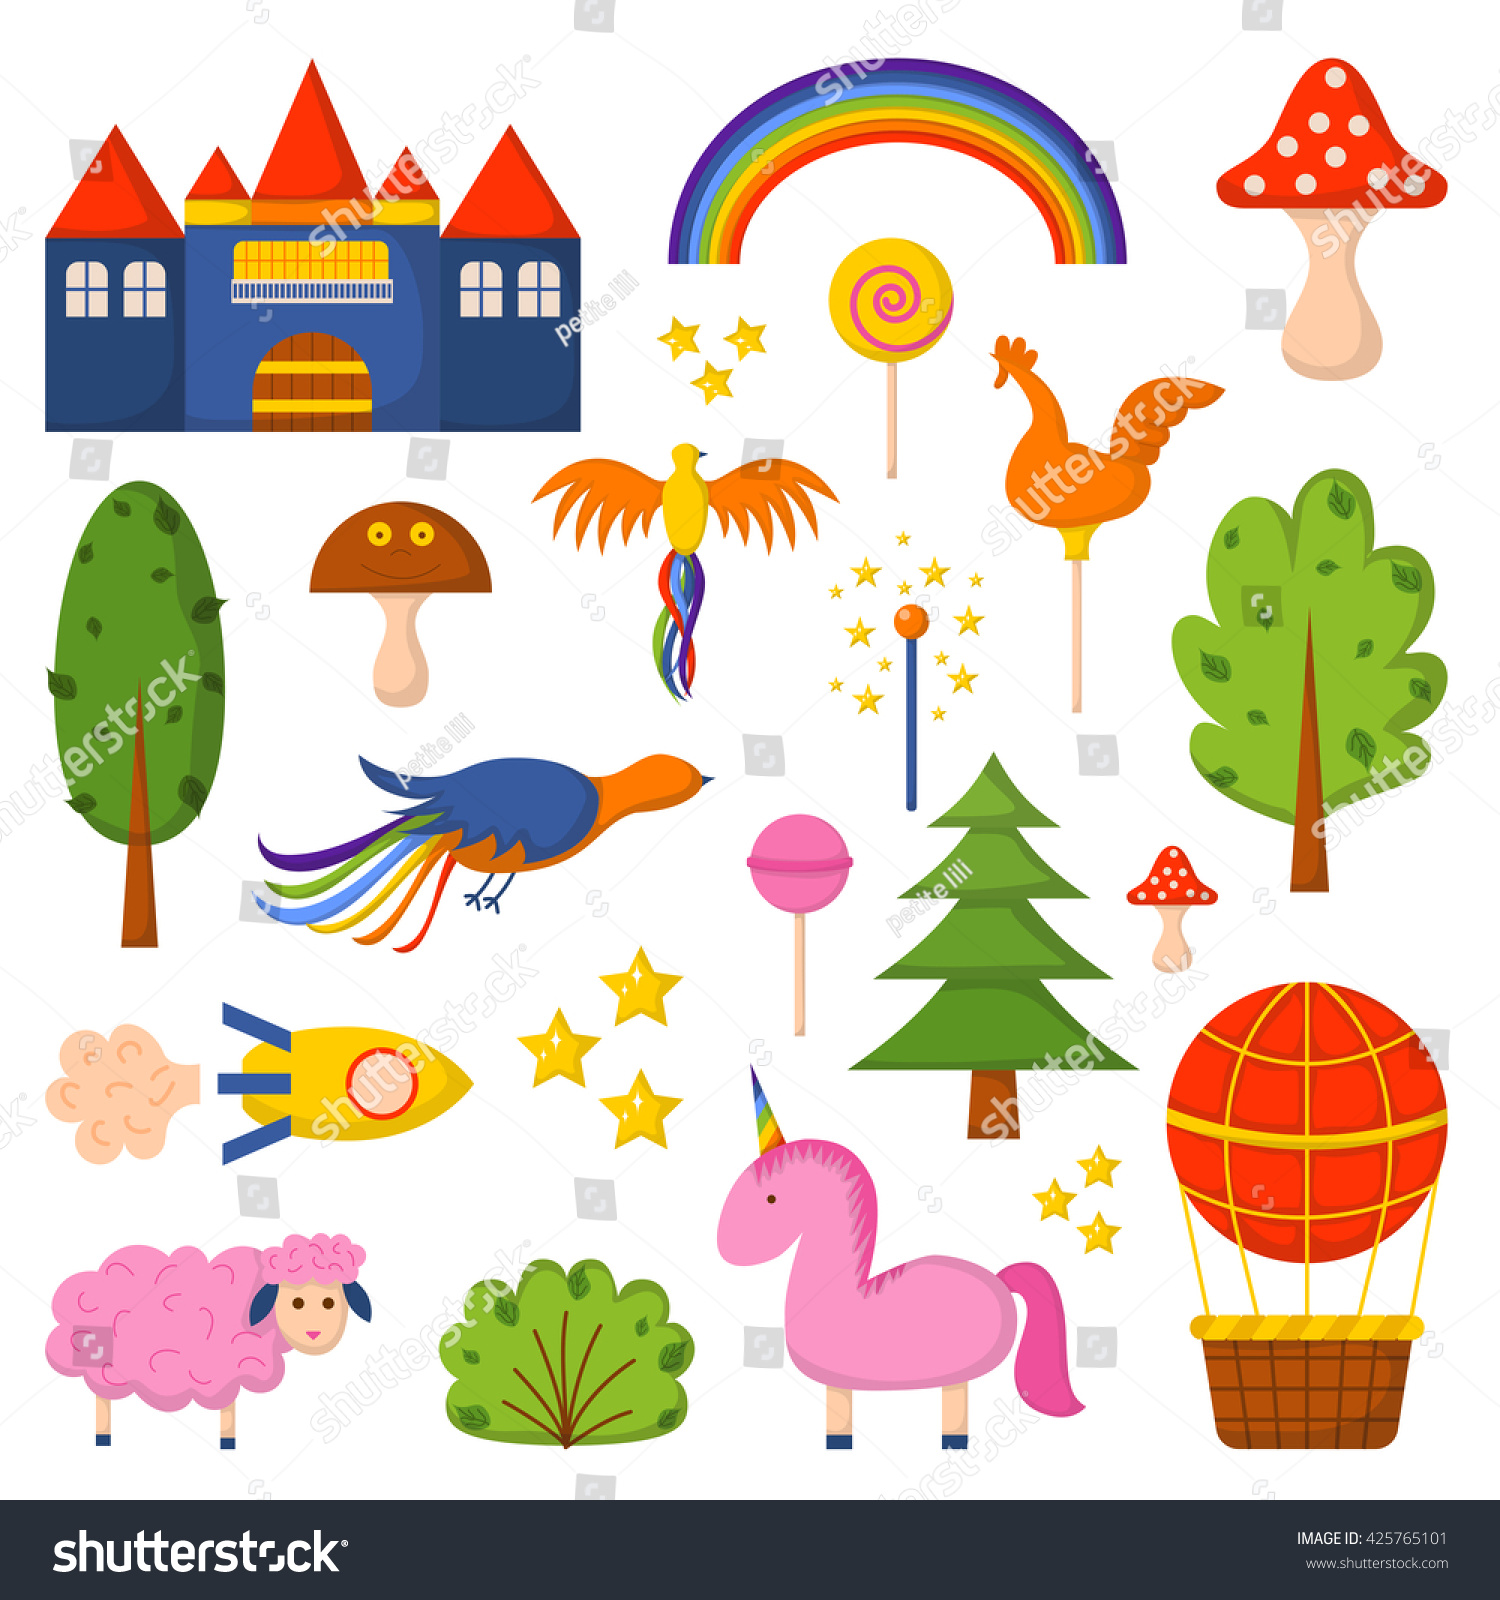 Children Book Cover Vector ~ Vector illustration cute colorful cartoon fantasy stock